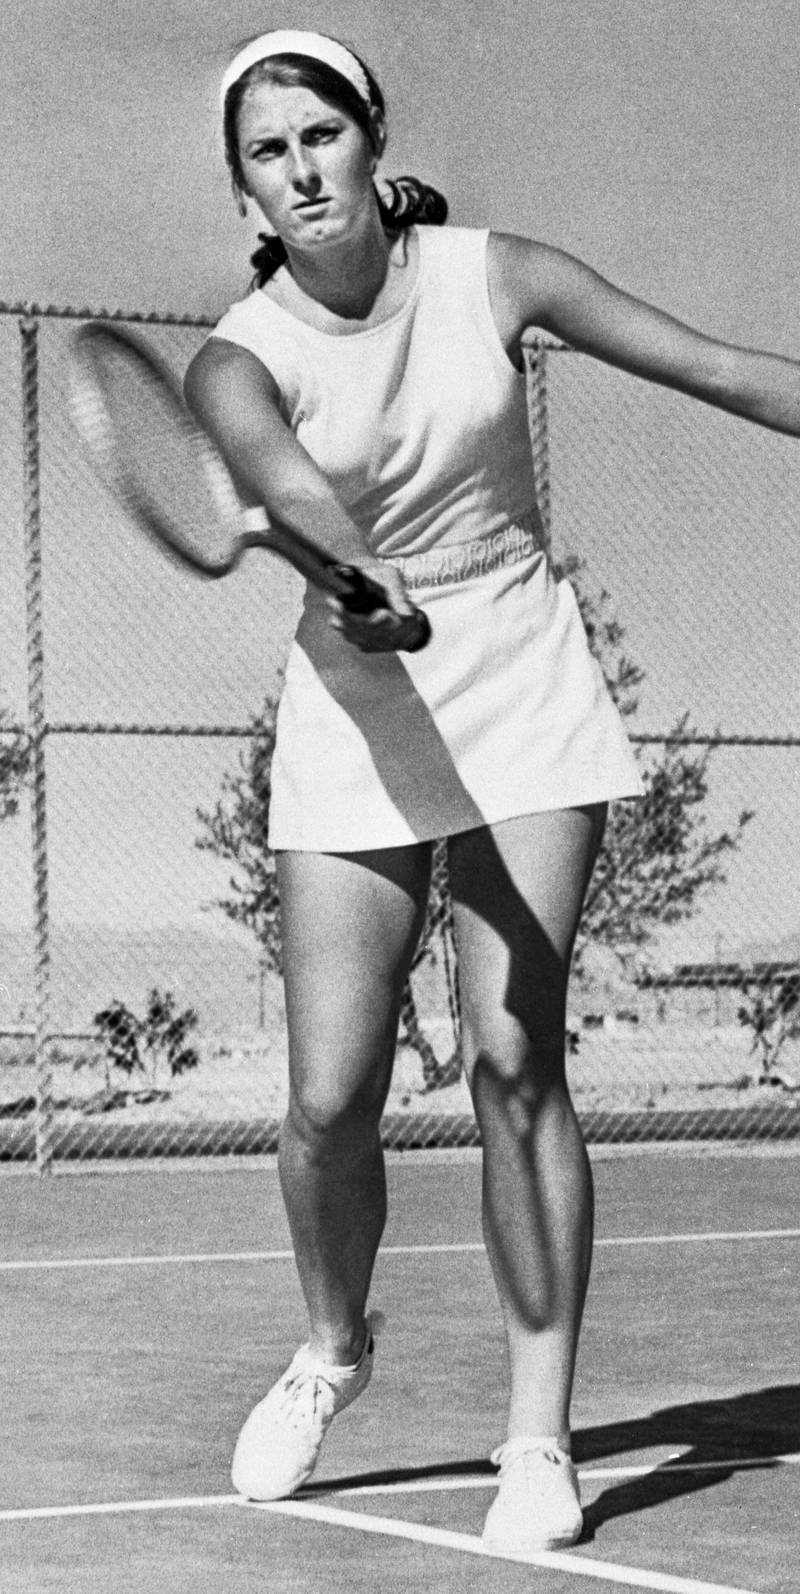 Posed shot of Valerie Ziegenfuss. (Photo by Bettmann Archive/Getty Images)